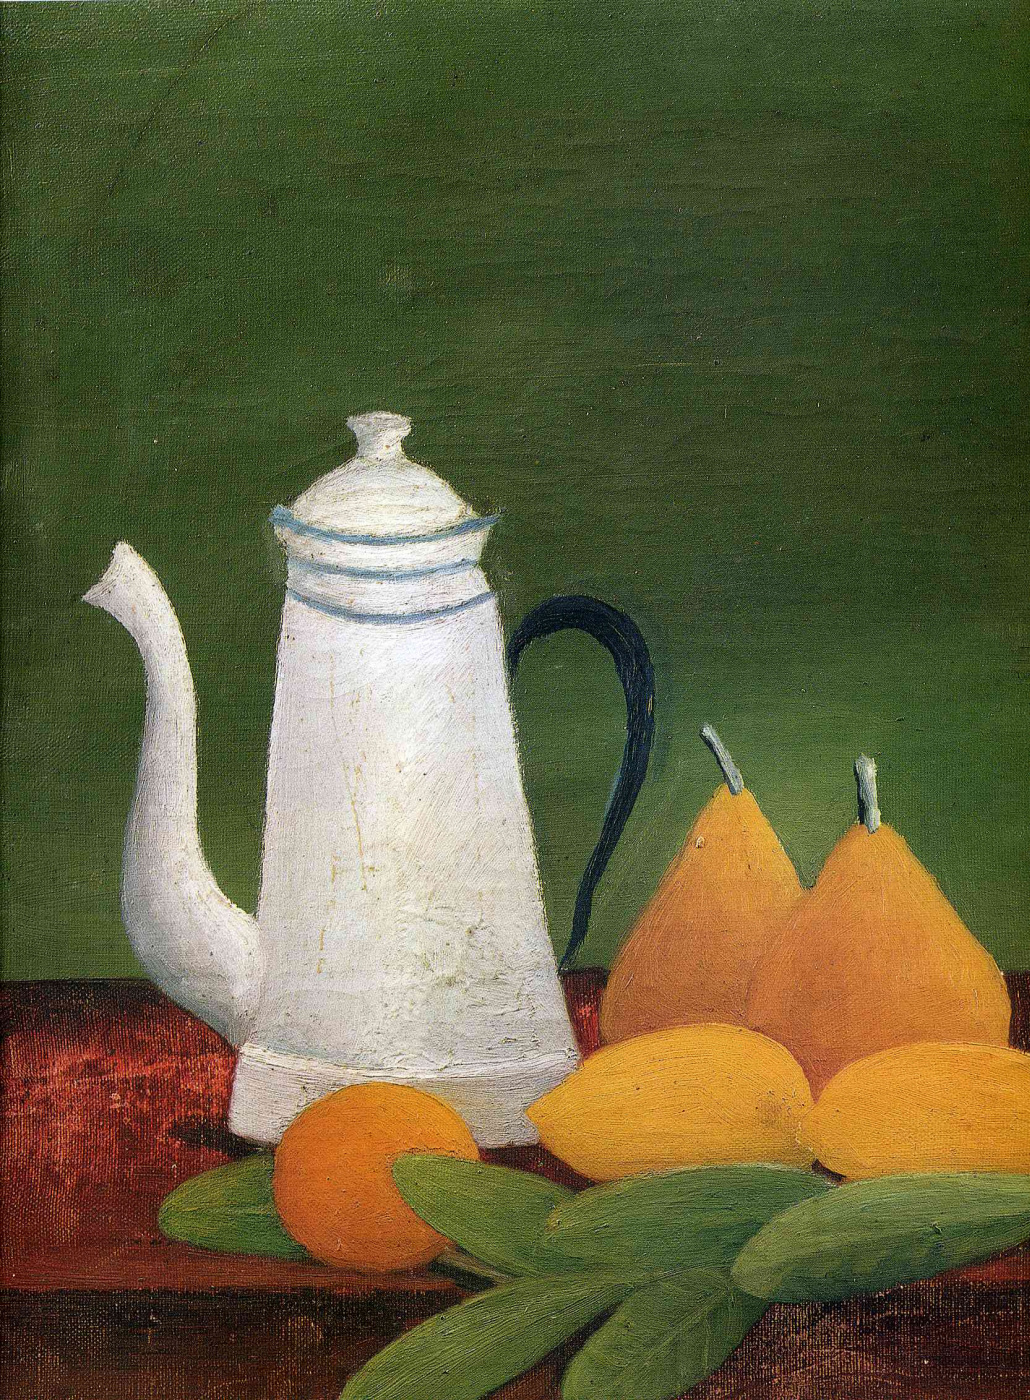 Henri Rousseau. Still life with pears. Fragment